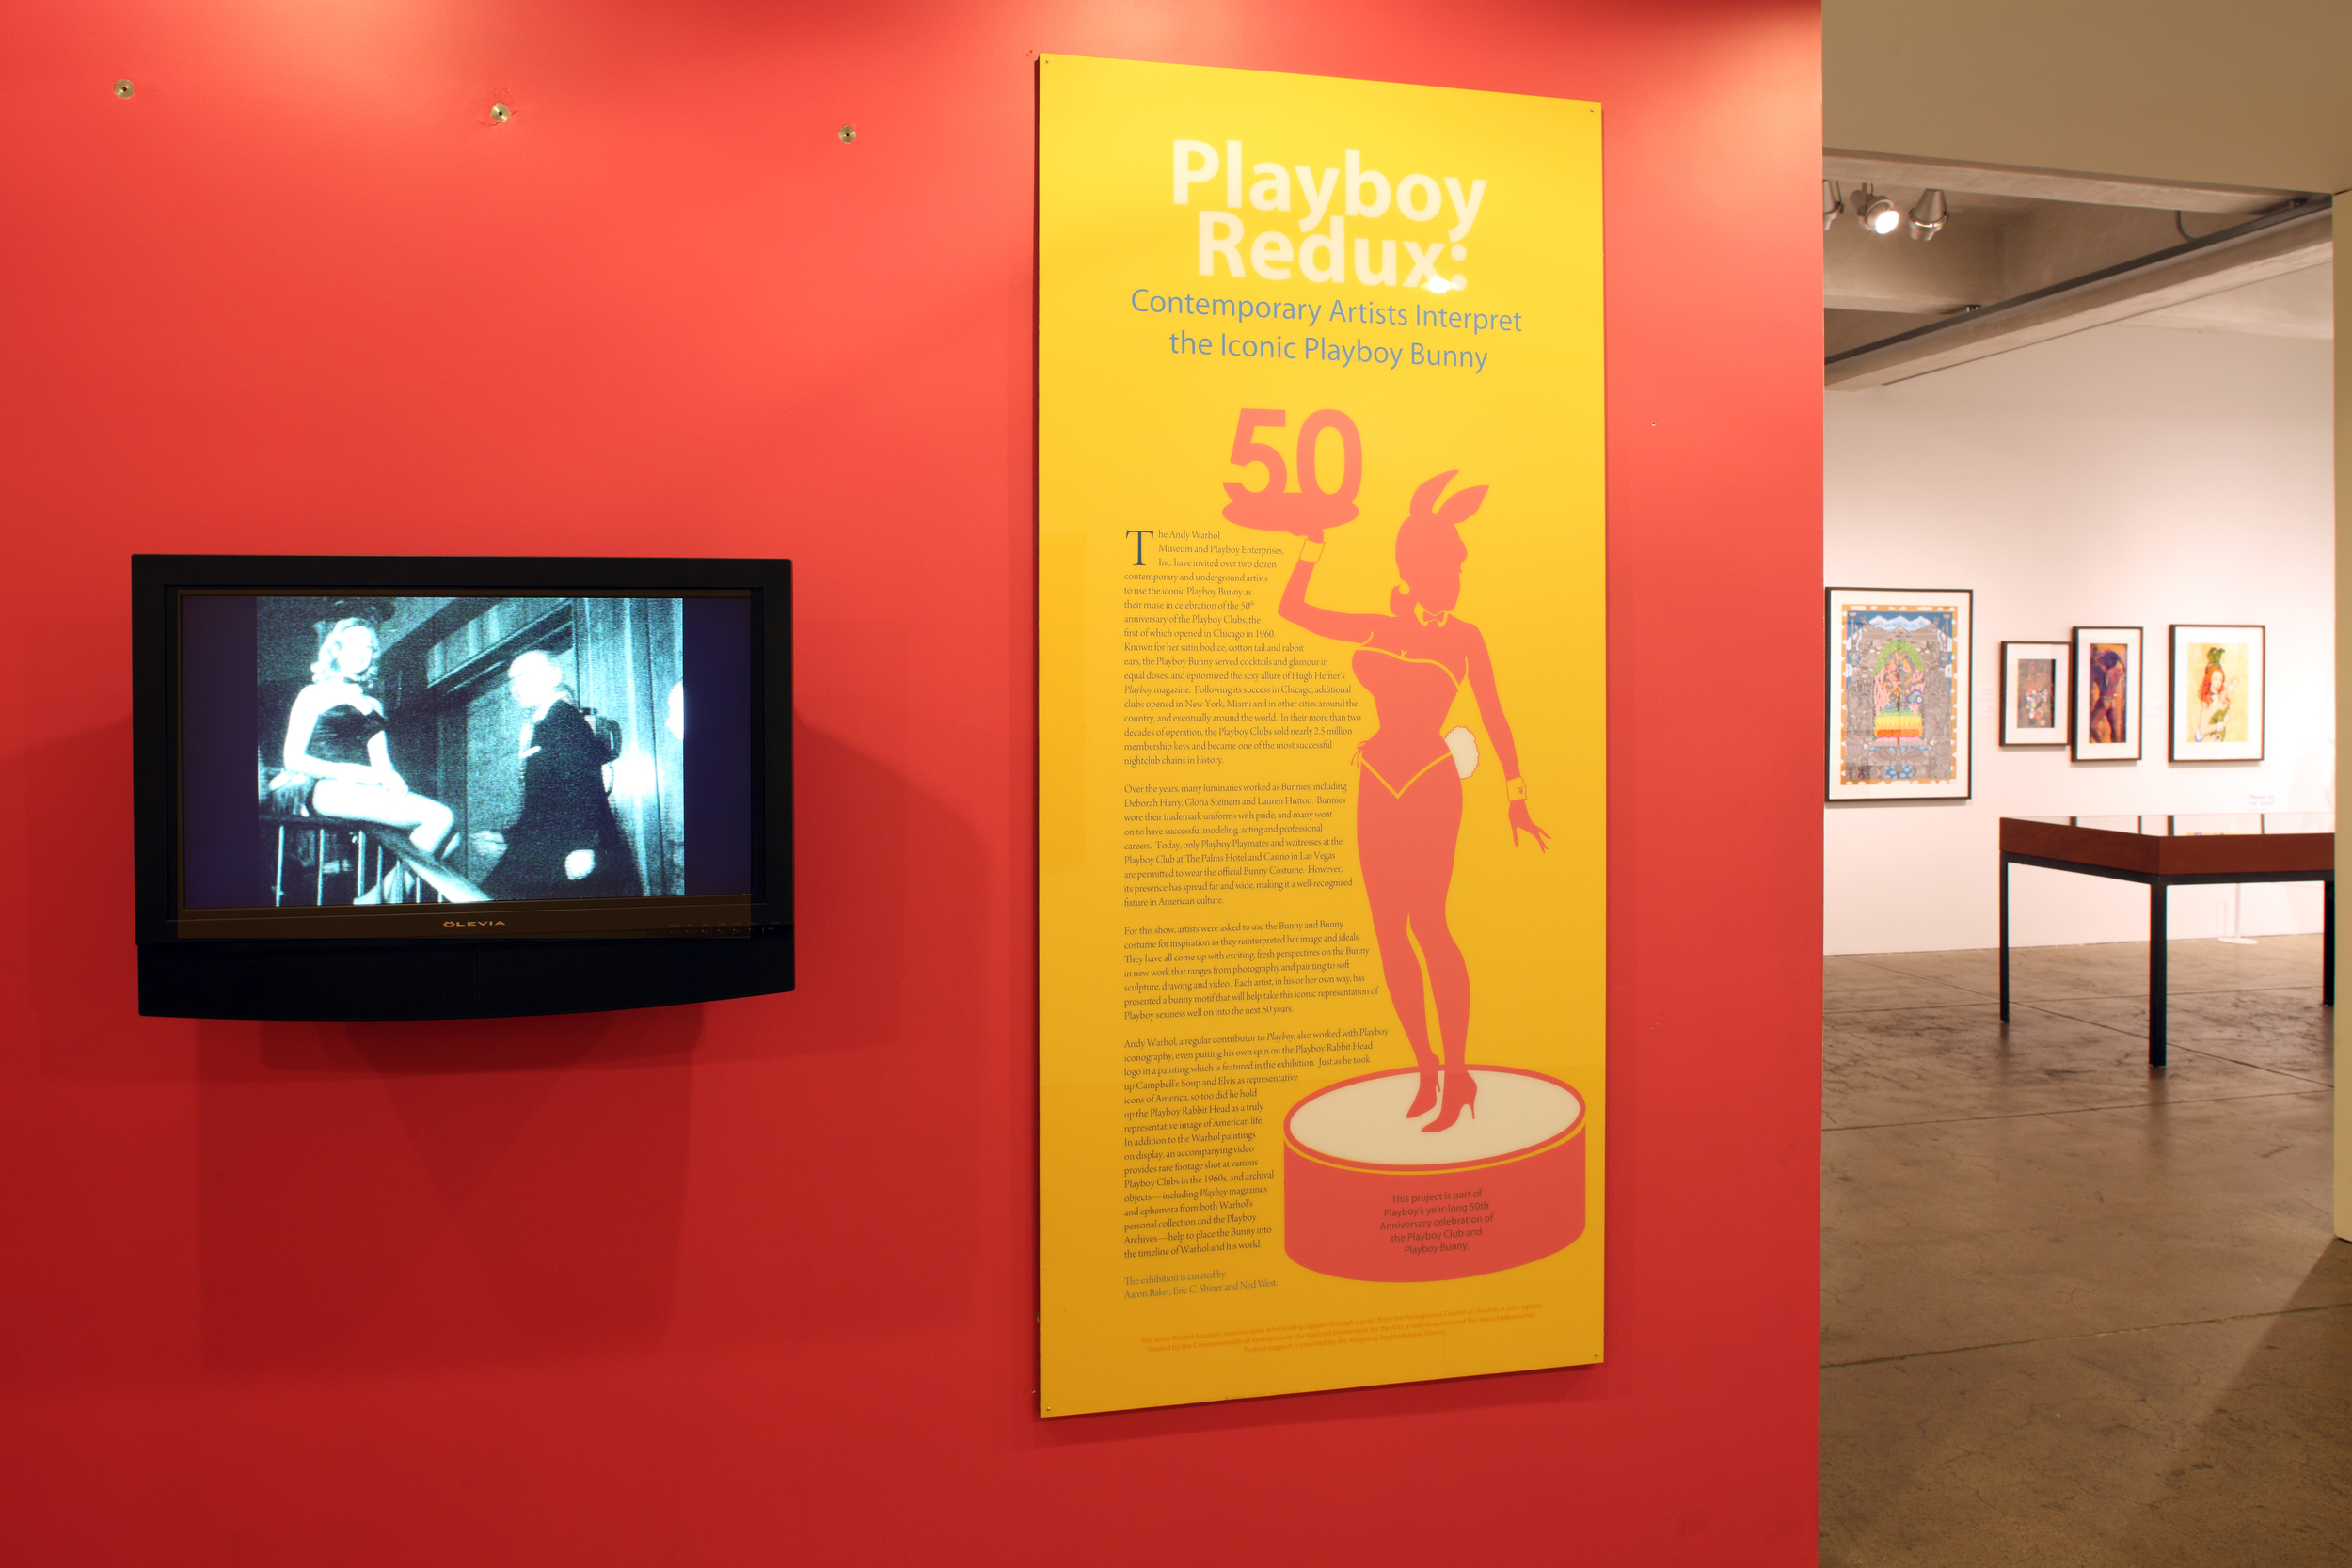 Playboy Redux at The Andy Warhol Museum, 2010 0001.JPG